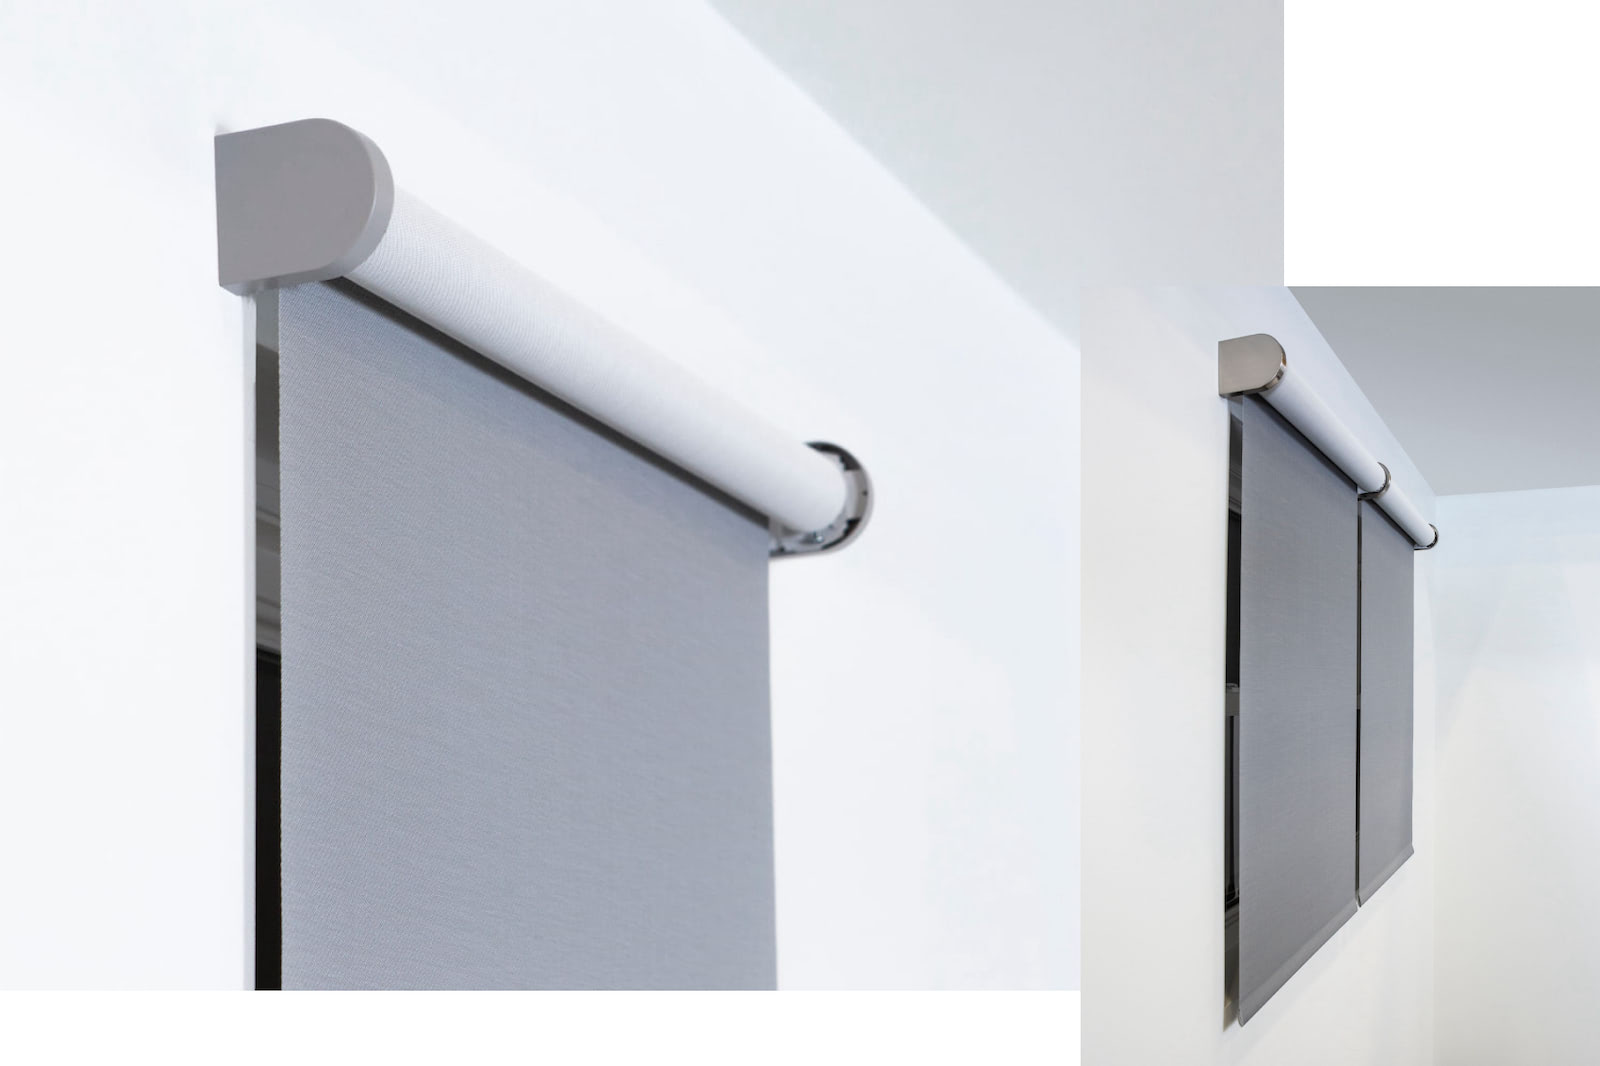 Pictures of 2 windows using Decor shade hardware